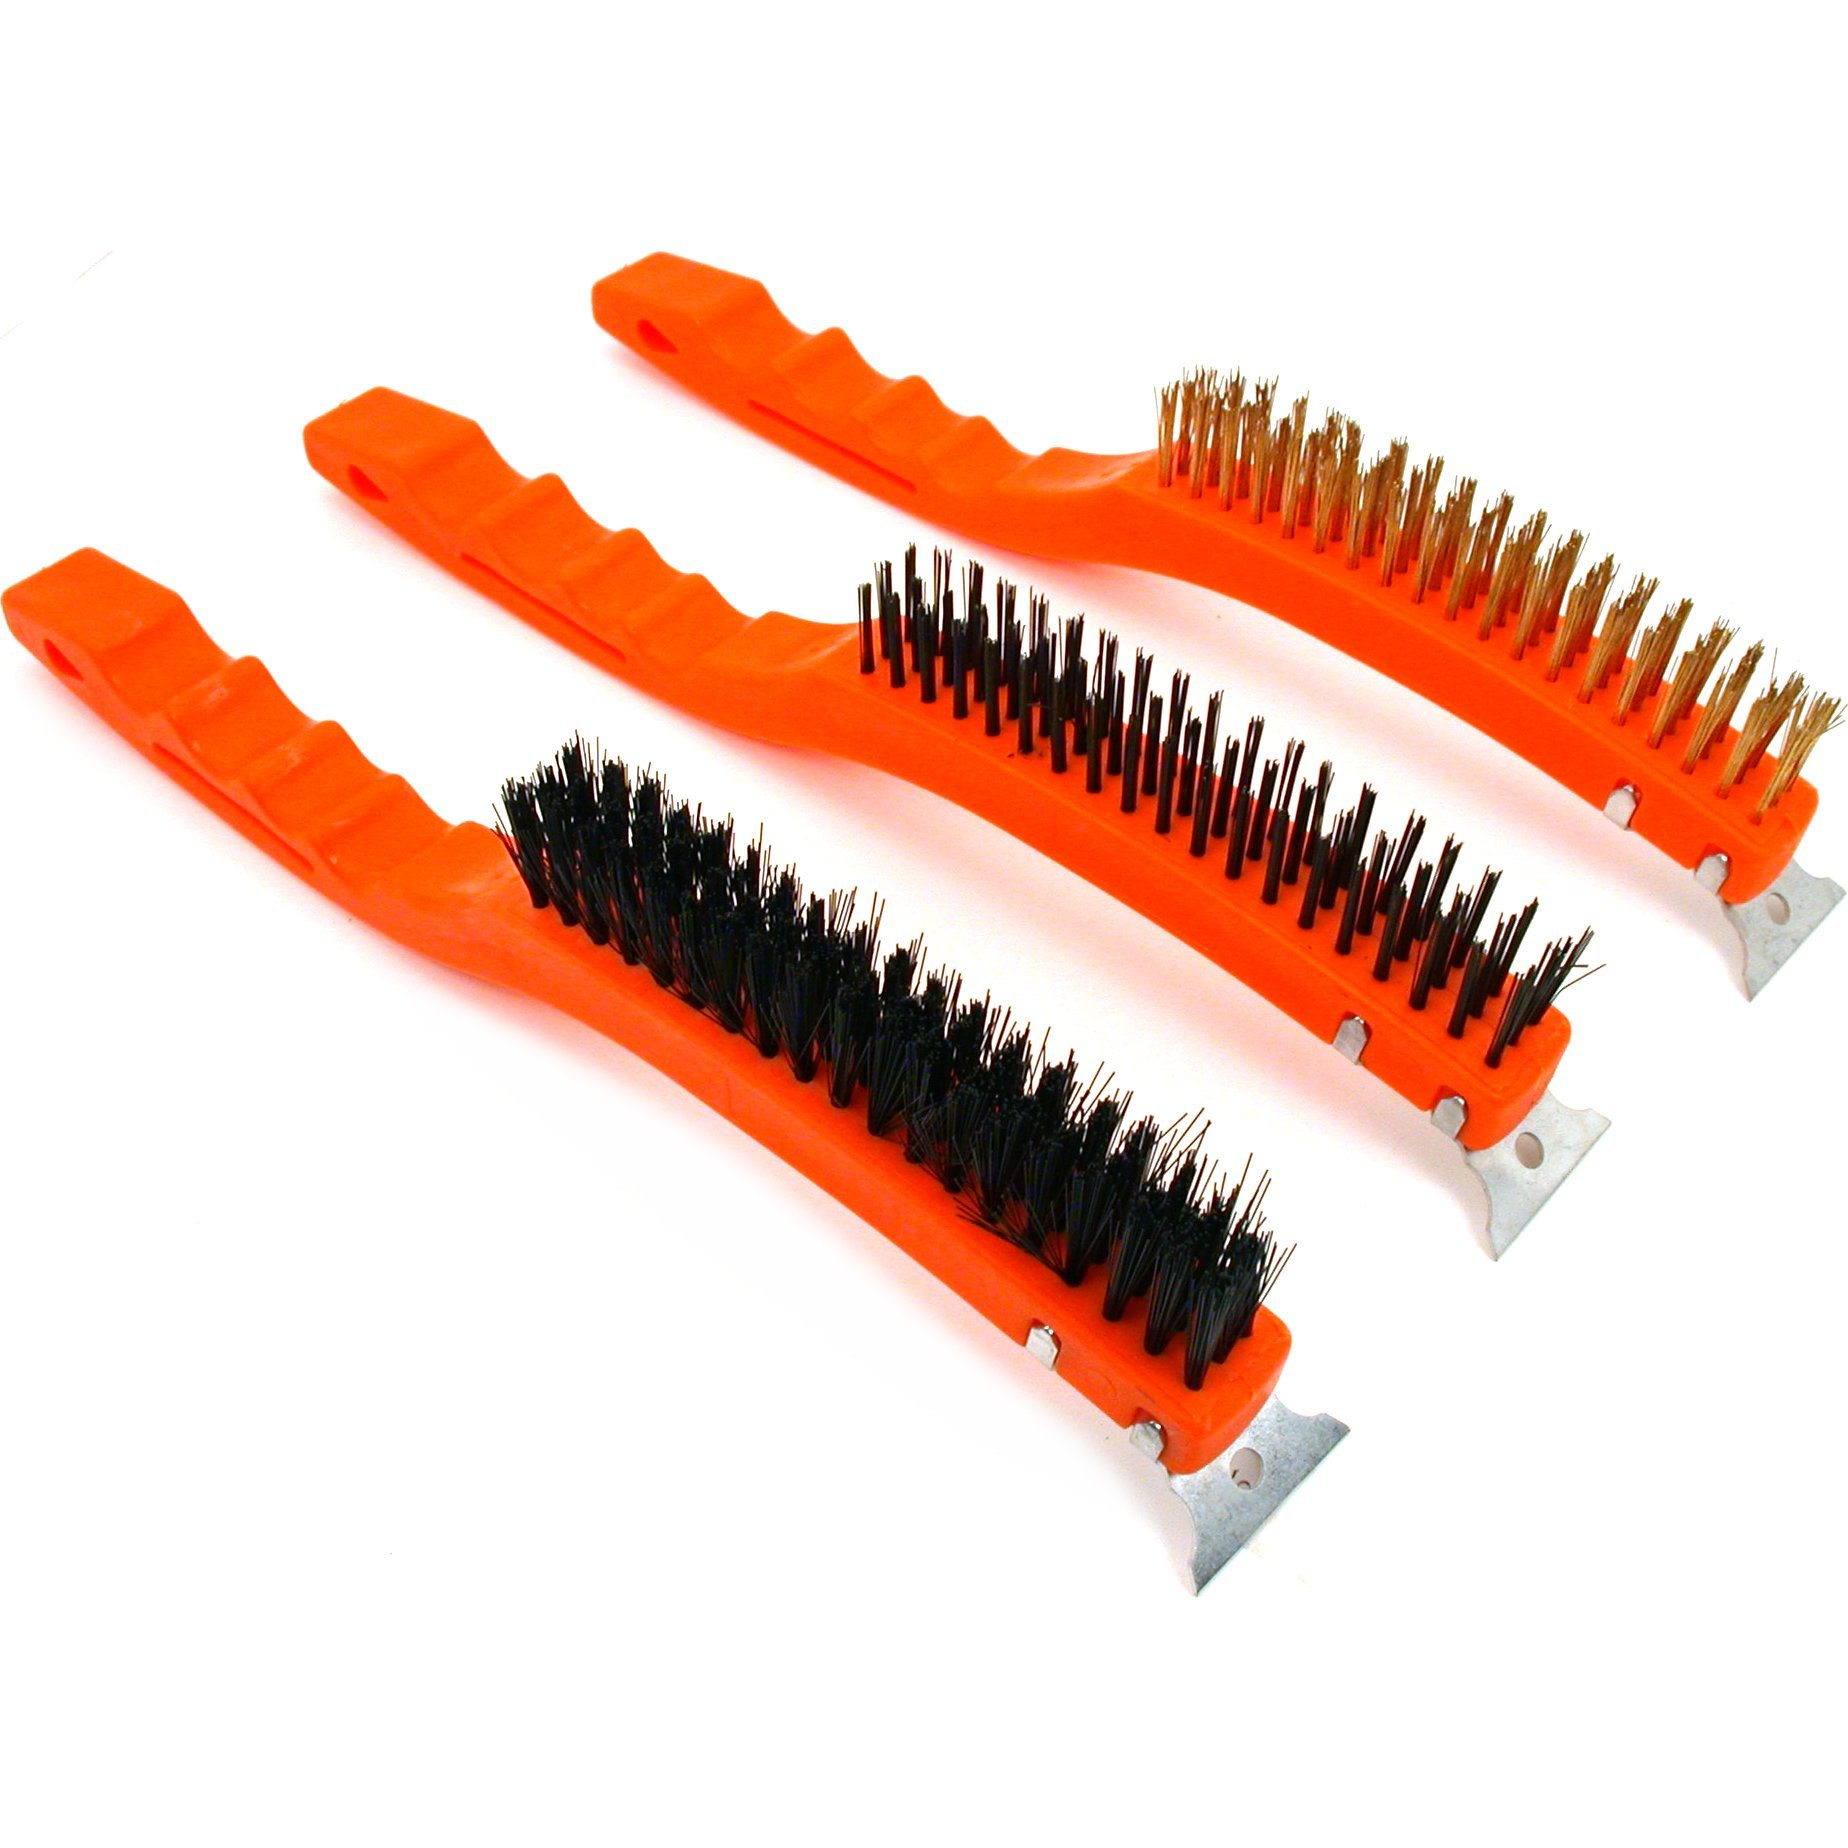 3 Brass Nylon Steel Cleaning Scraper Brushes Shop Tools